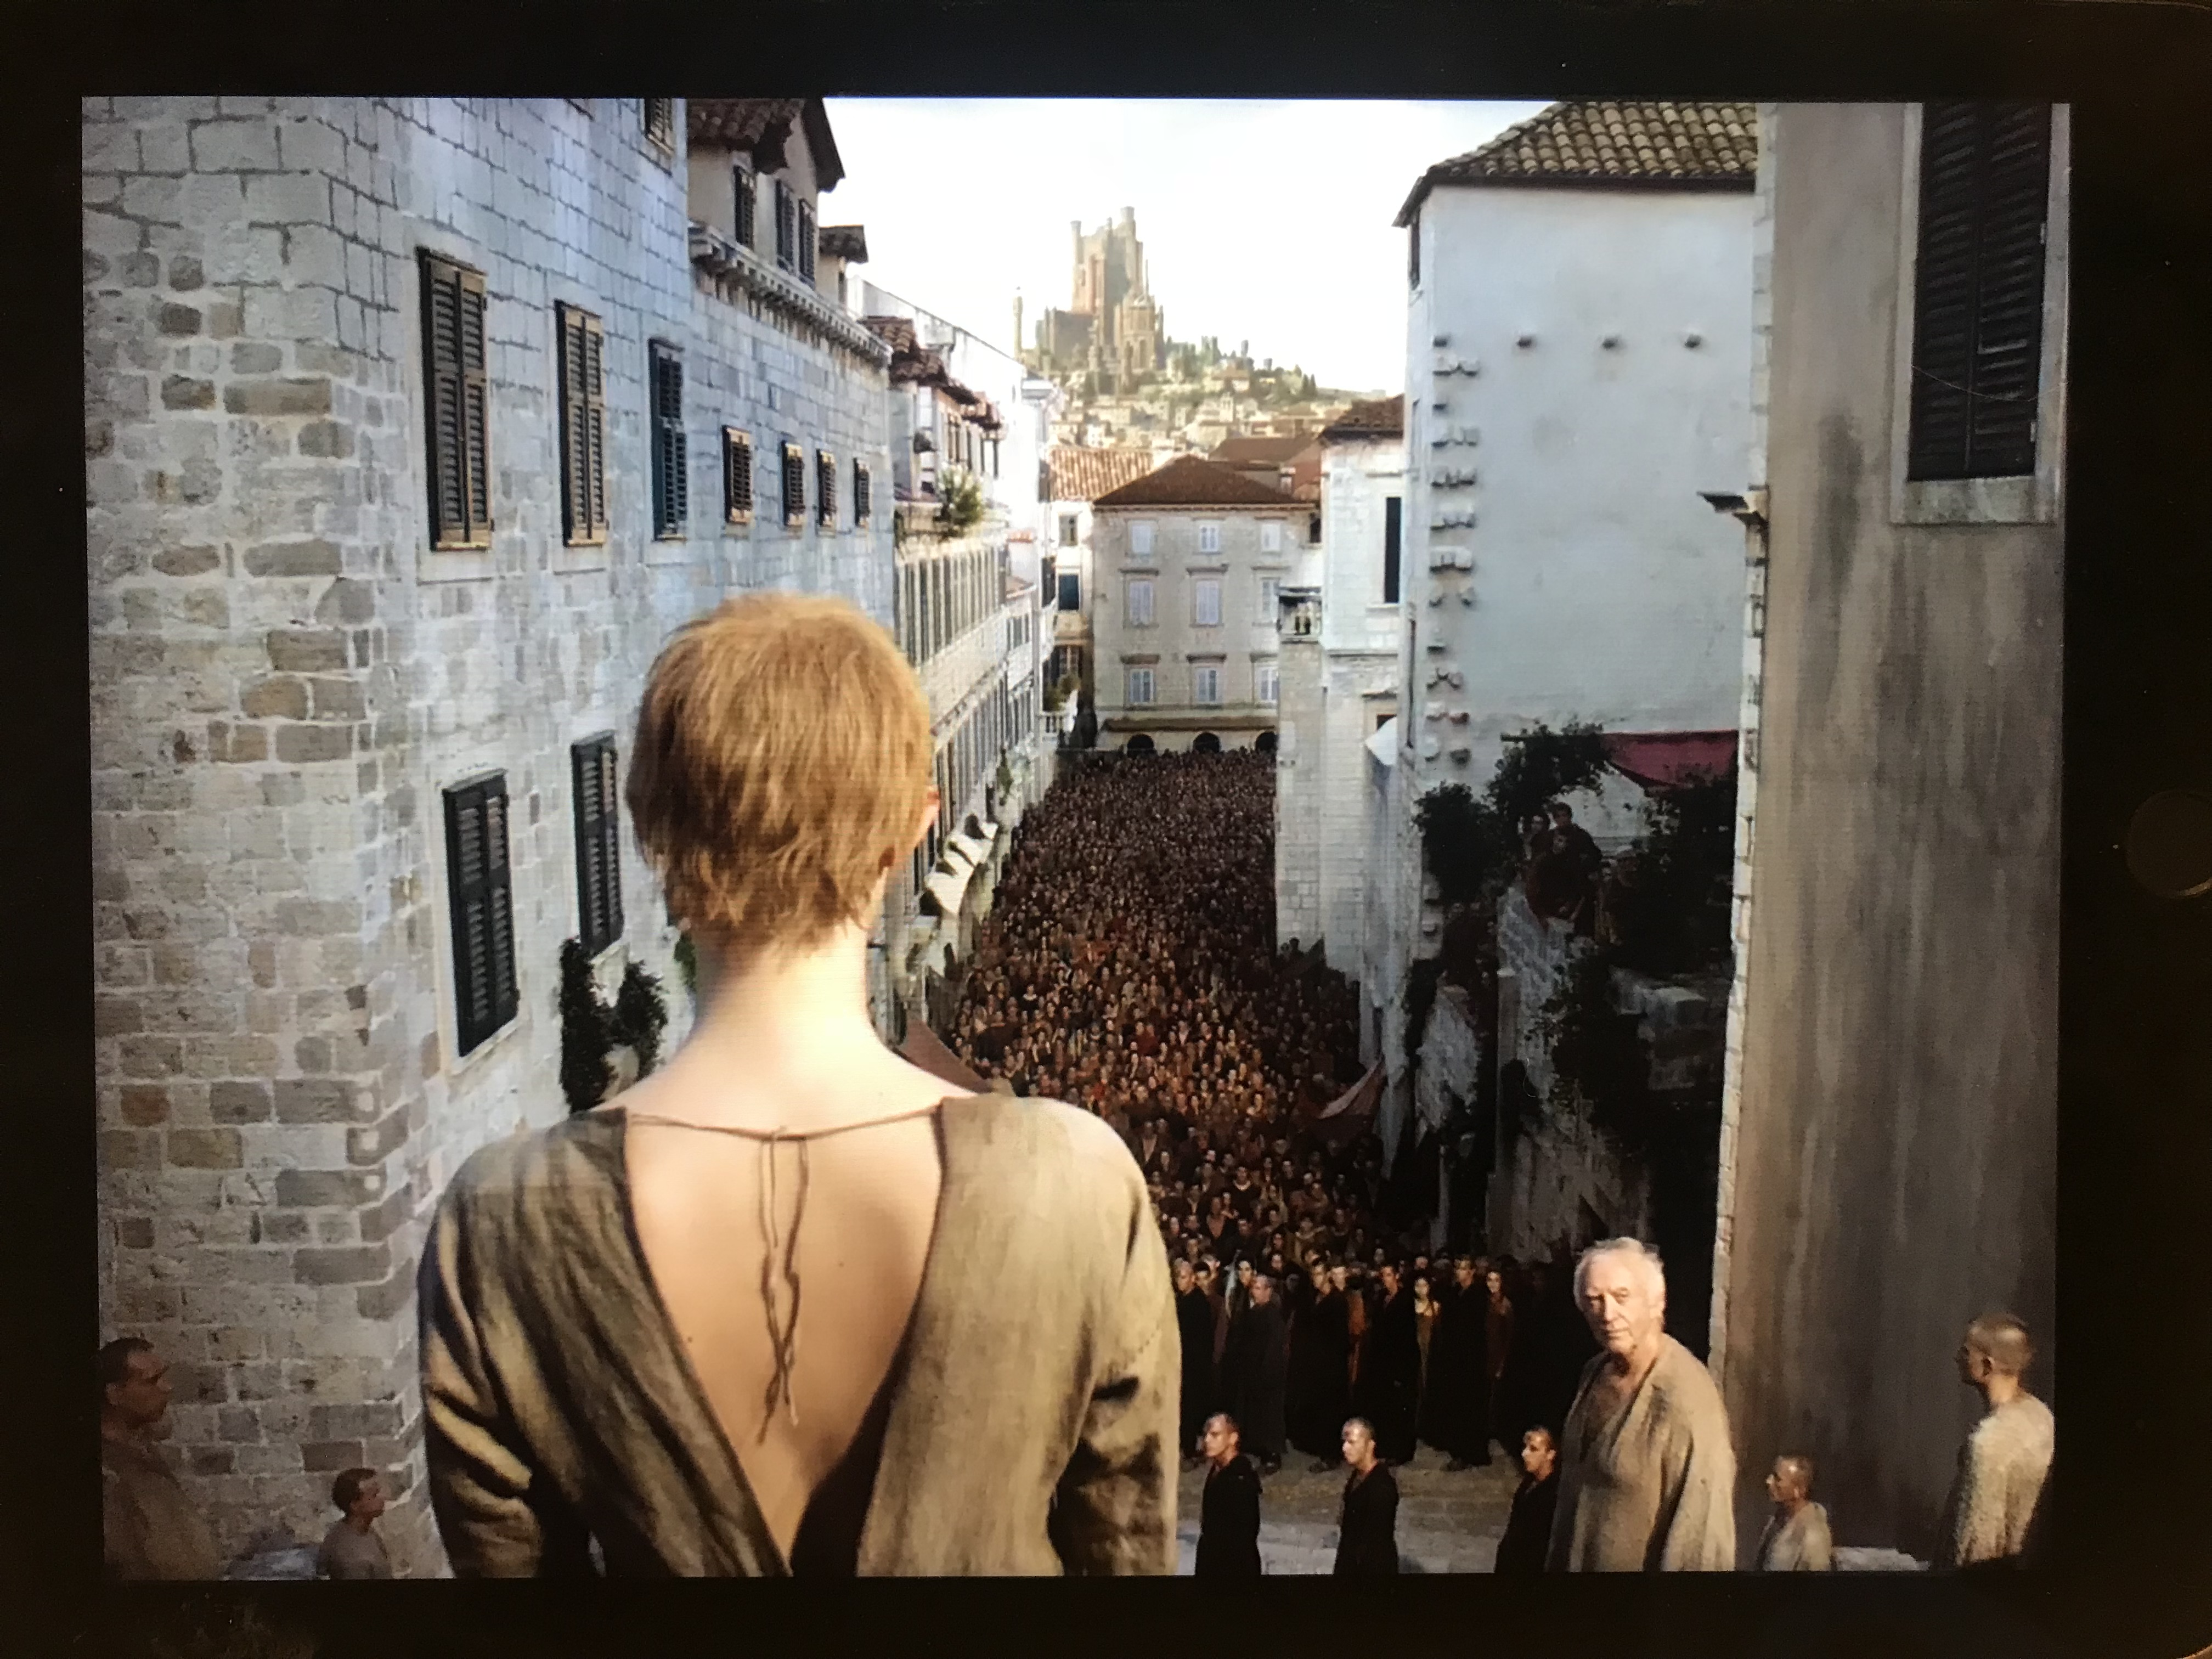 The iconic scene where Cersei began her walk of shame through the streets of King's Landing was filmed in Old Town, Dubrovnik, Croatia